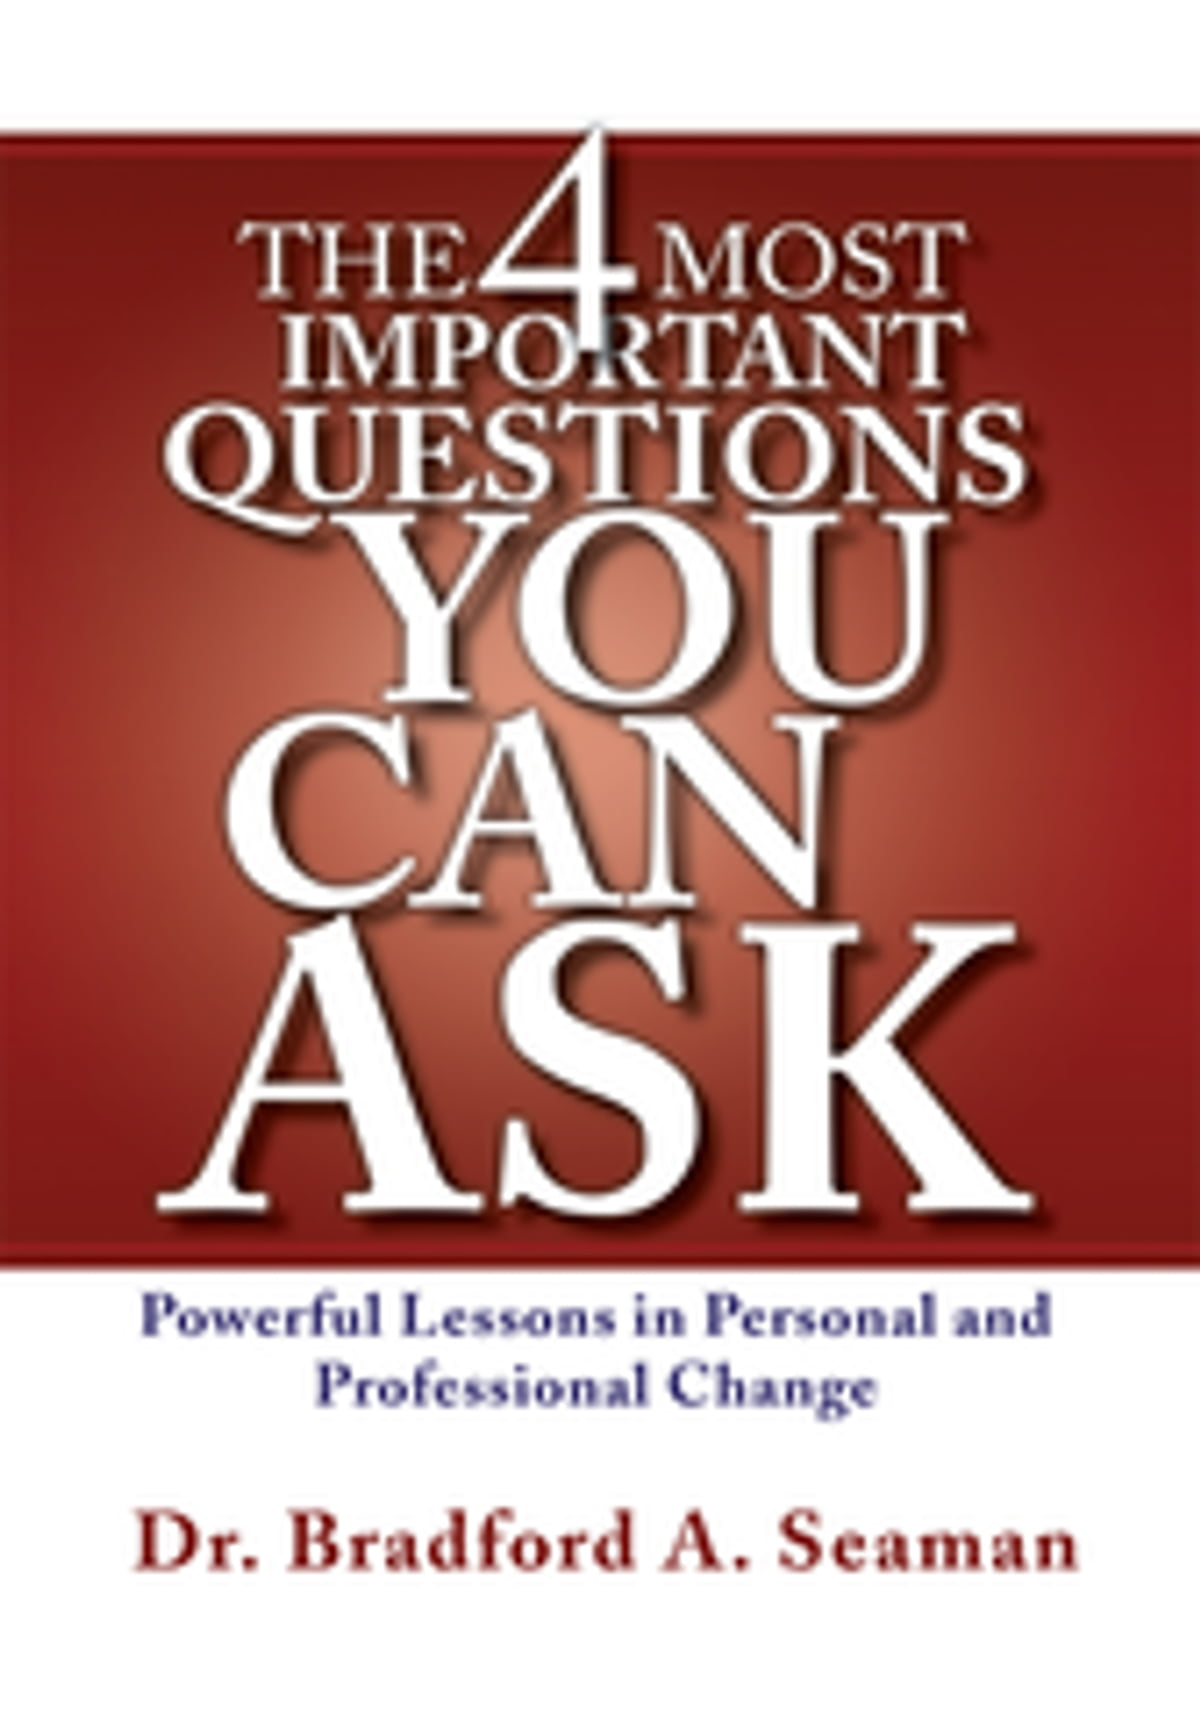 The 4 Most Important Questions You Can Ask : Powerful Lessons in Personal and Professional Change